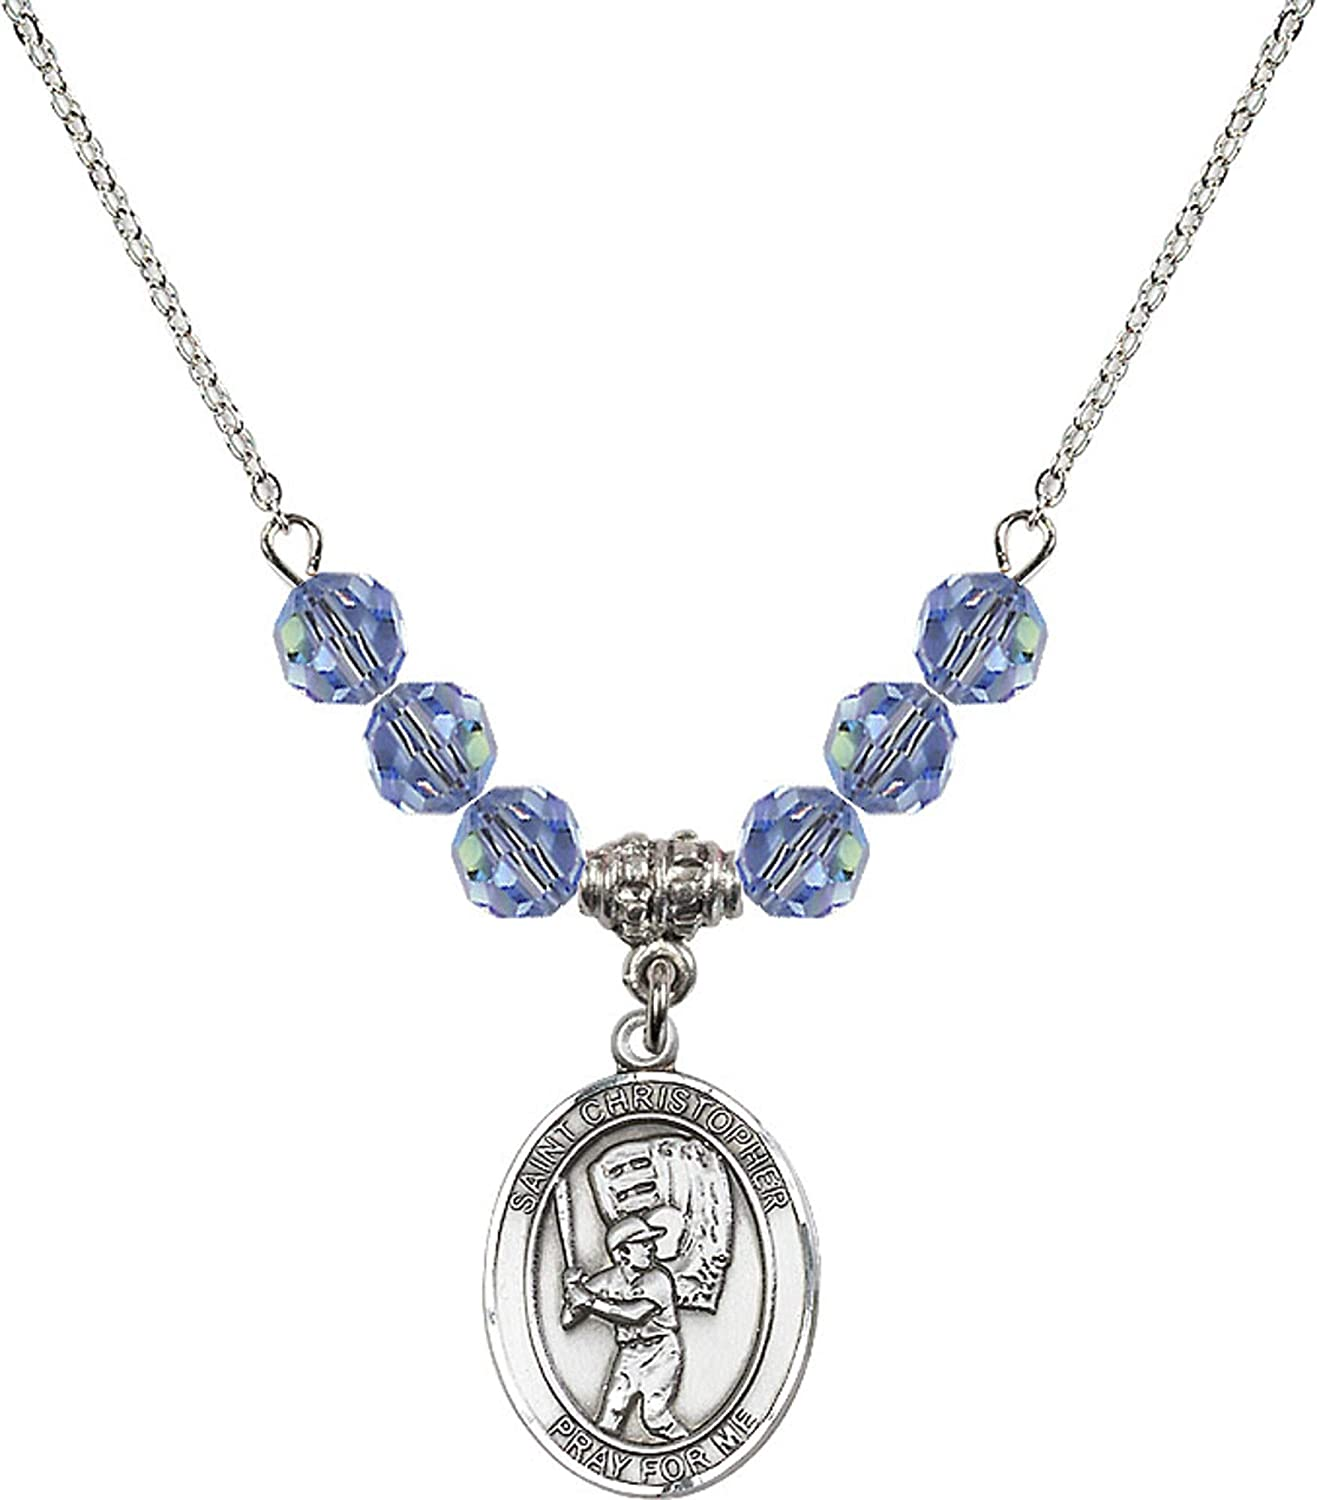 Bonyak Jewelry 18 Inch Rhodium Plated Necklace w// 6mm Light Blue September Birth Month Stone Beads and Saint Christopher//Baseball Charm